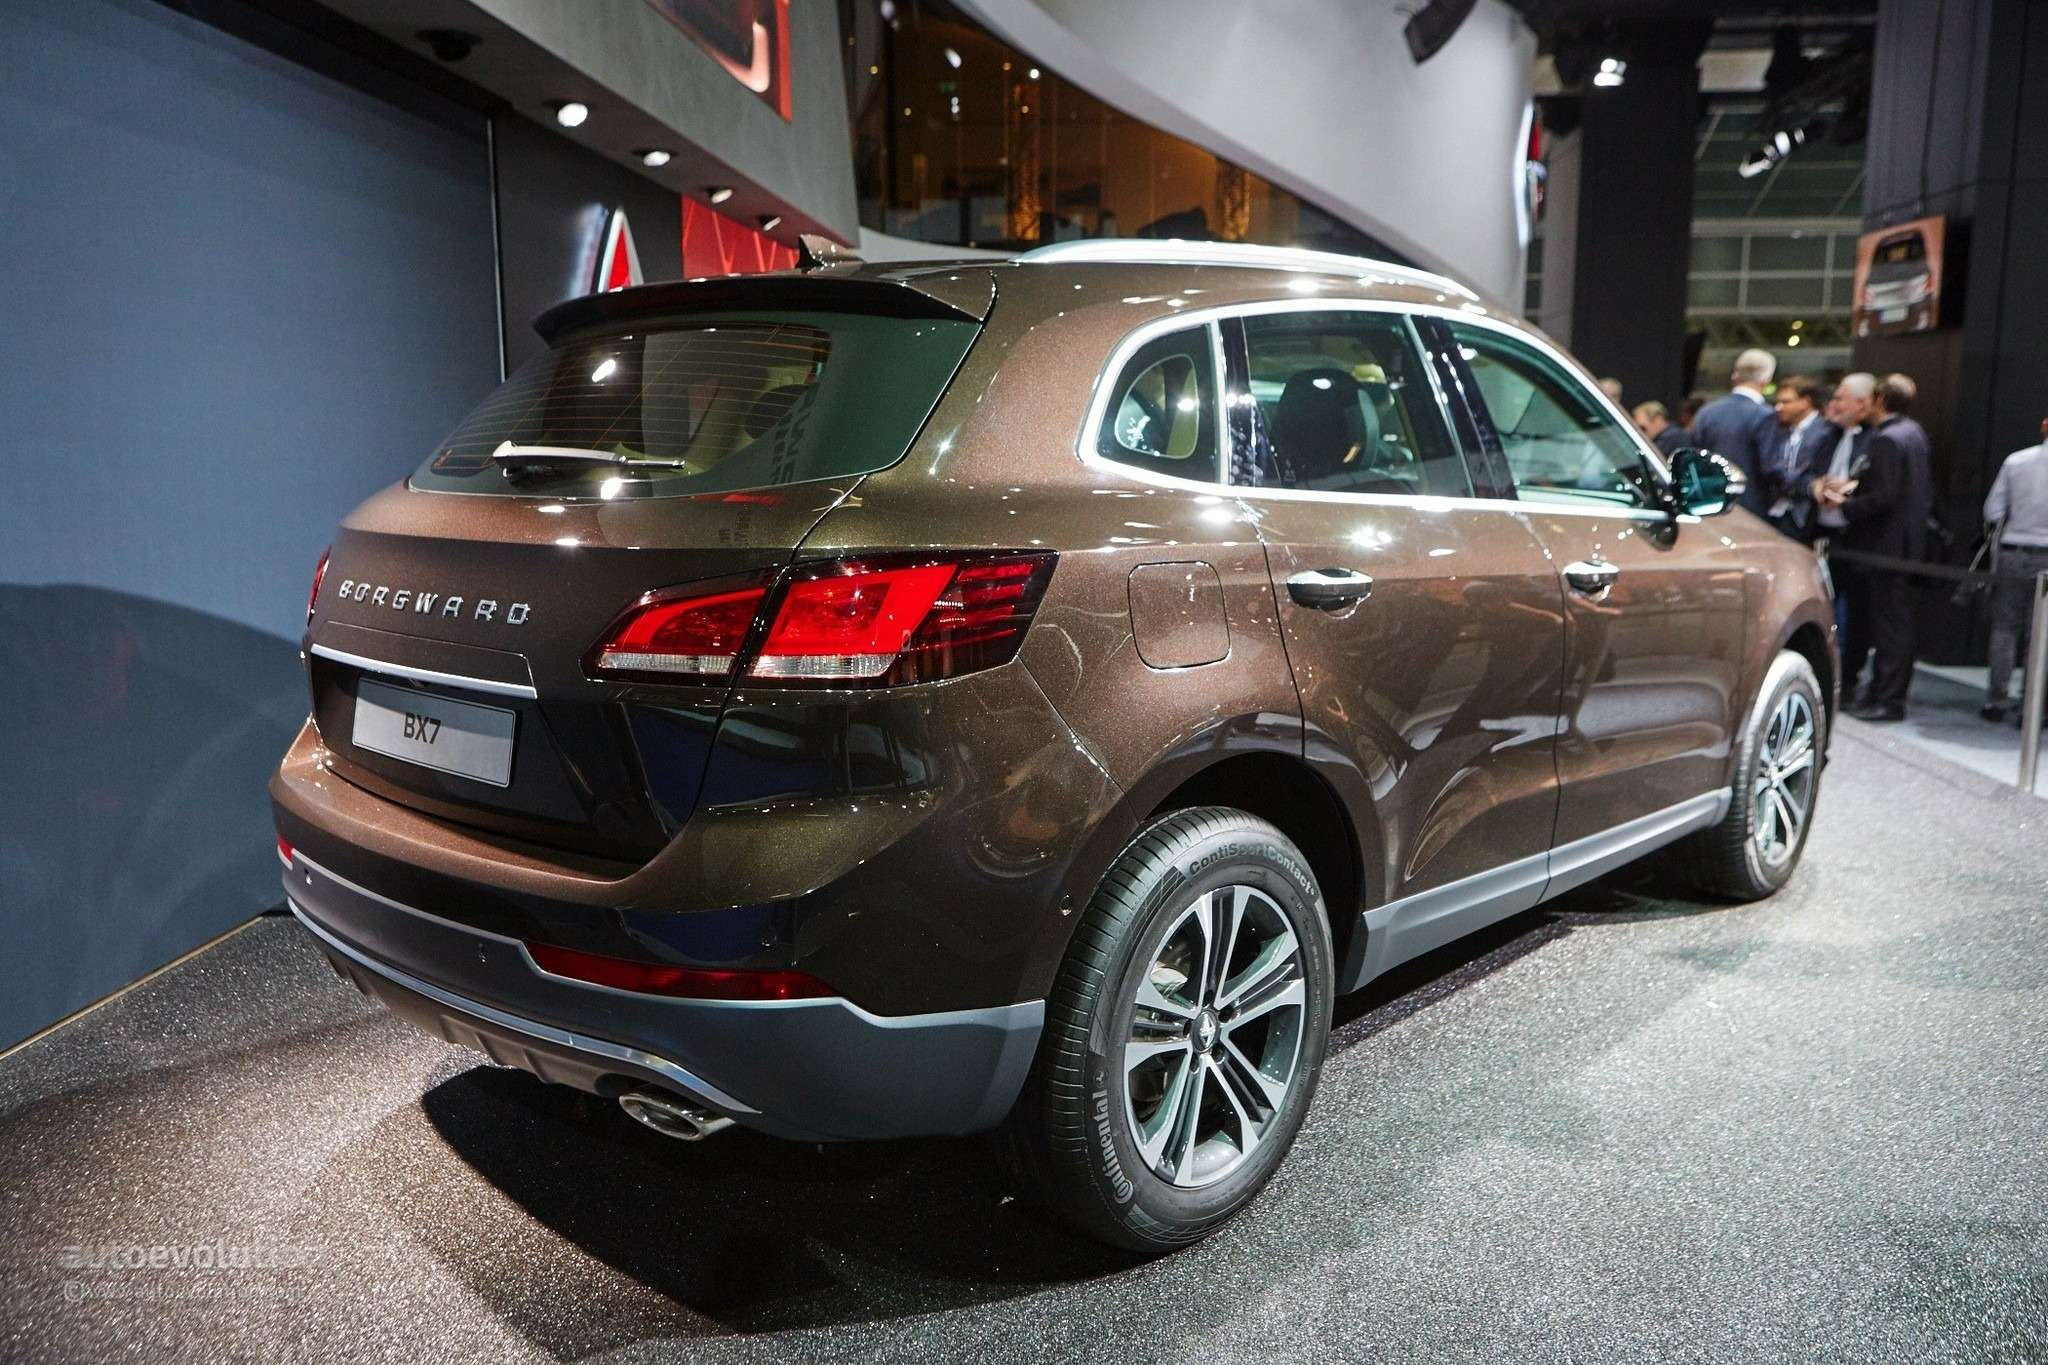 borgward-is-officially-back-with-its-bx7-suv-in-frankfurt-live-photos_16